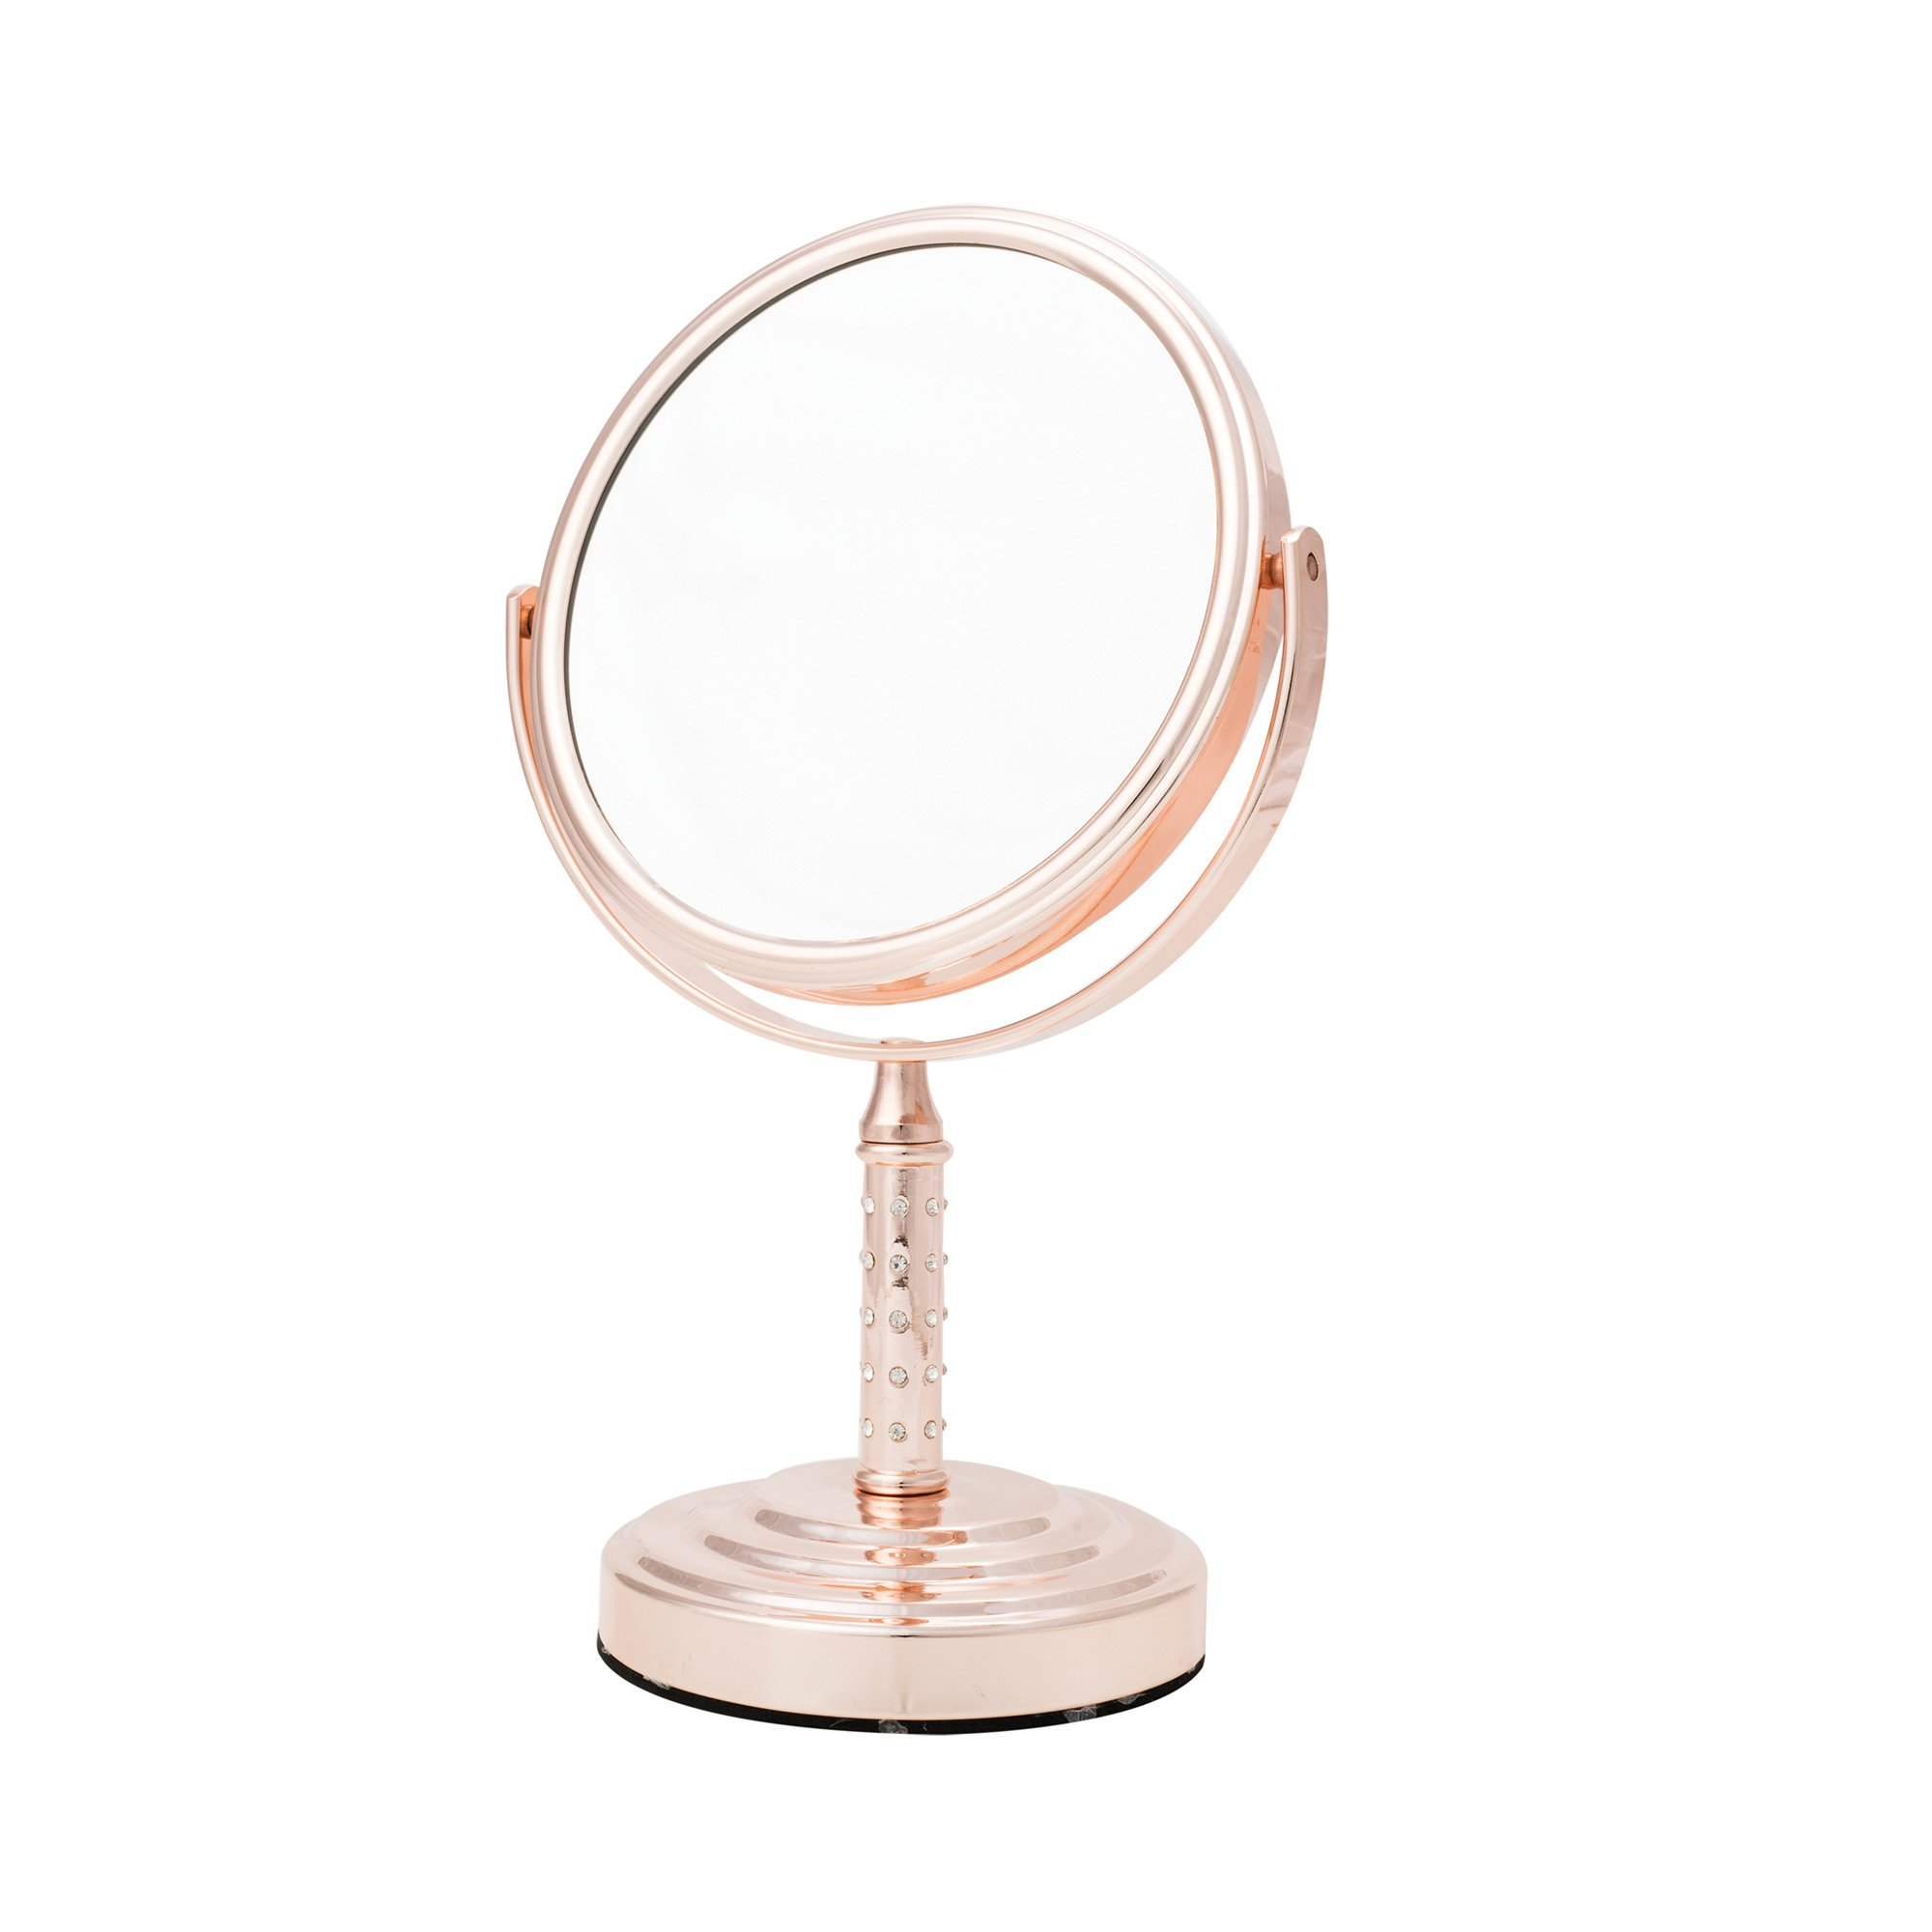 Danielle Creations Midi Rose Gold Vanity Mirror with Crystal Studded Stem, 5X Magnification